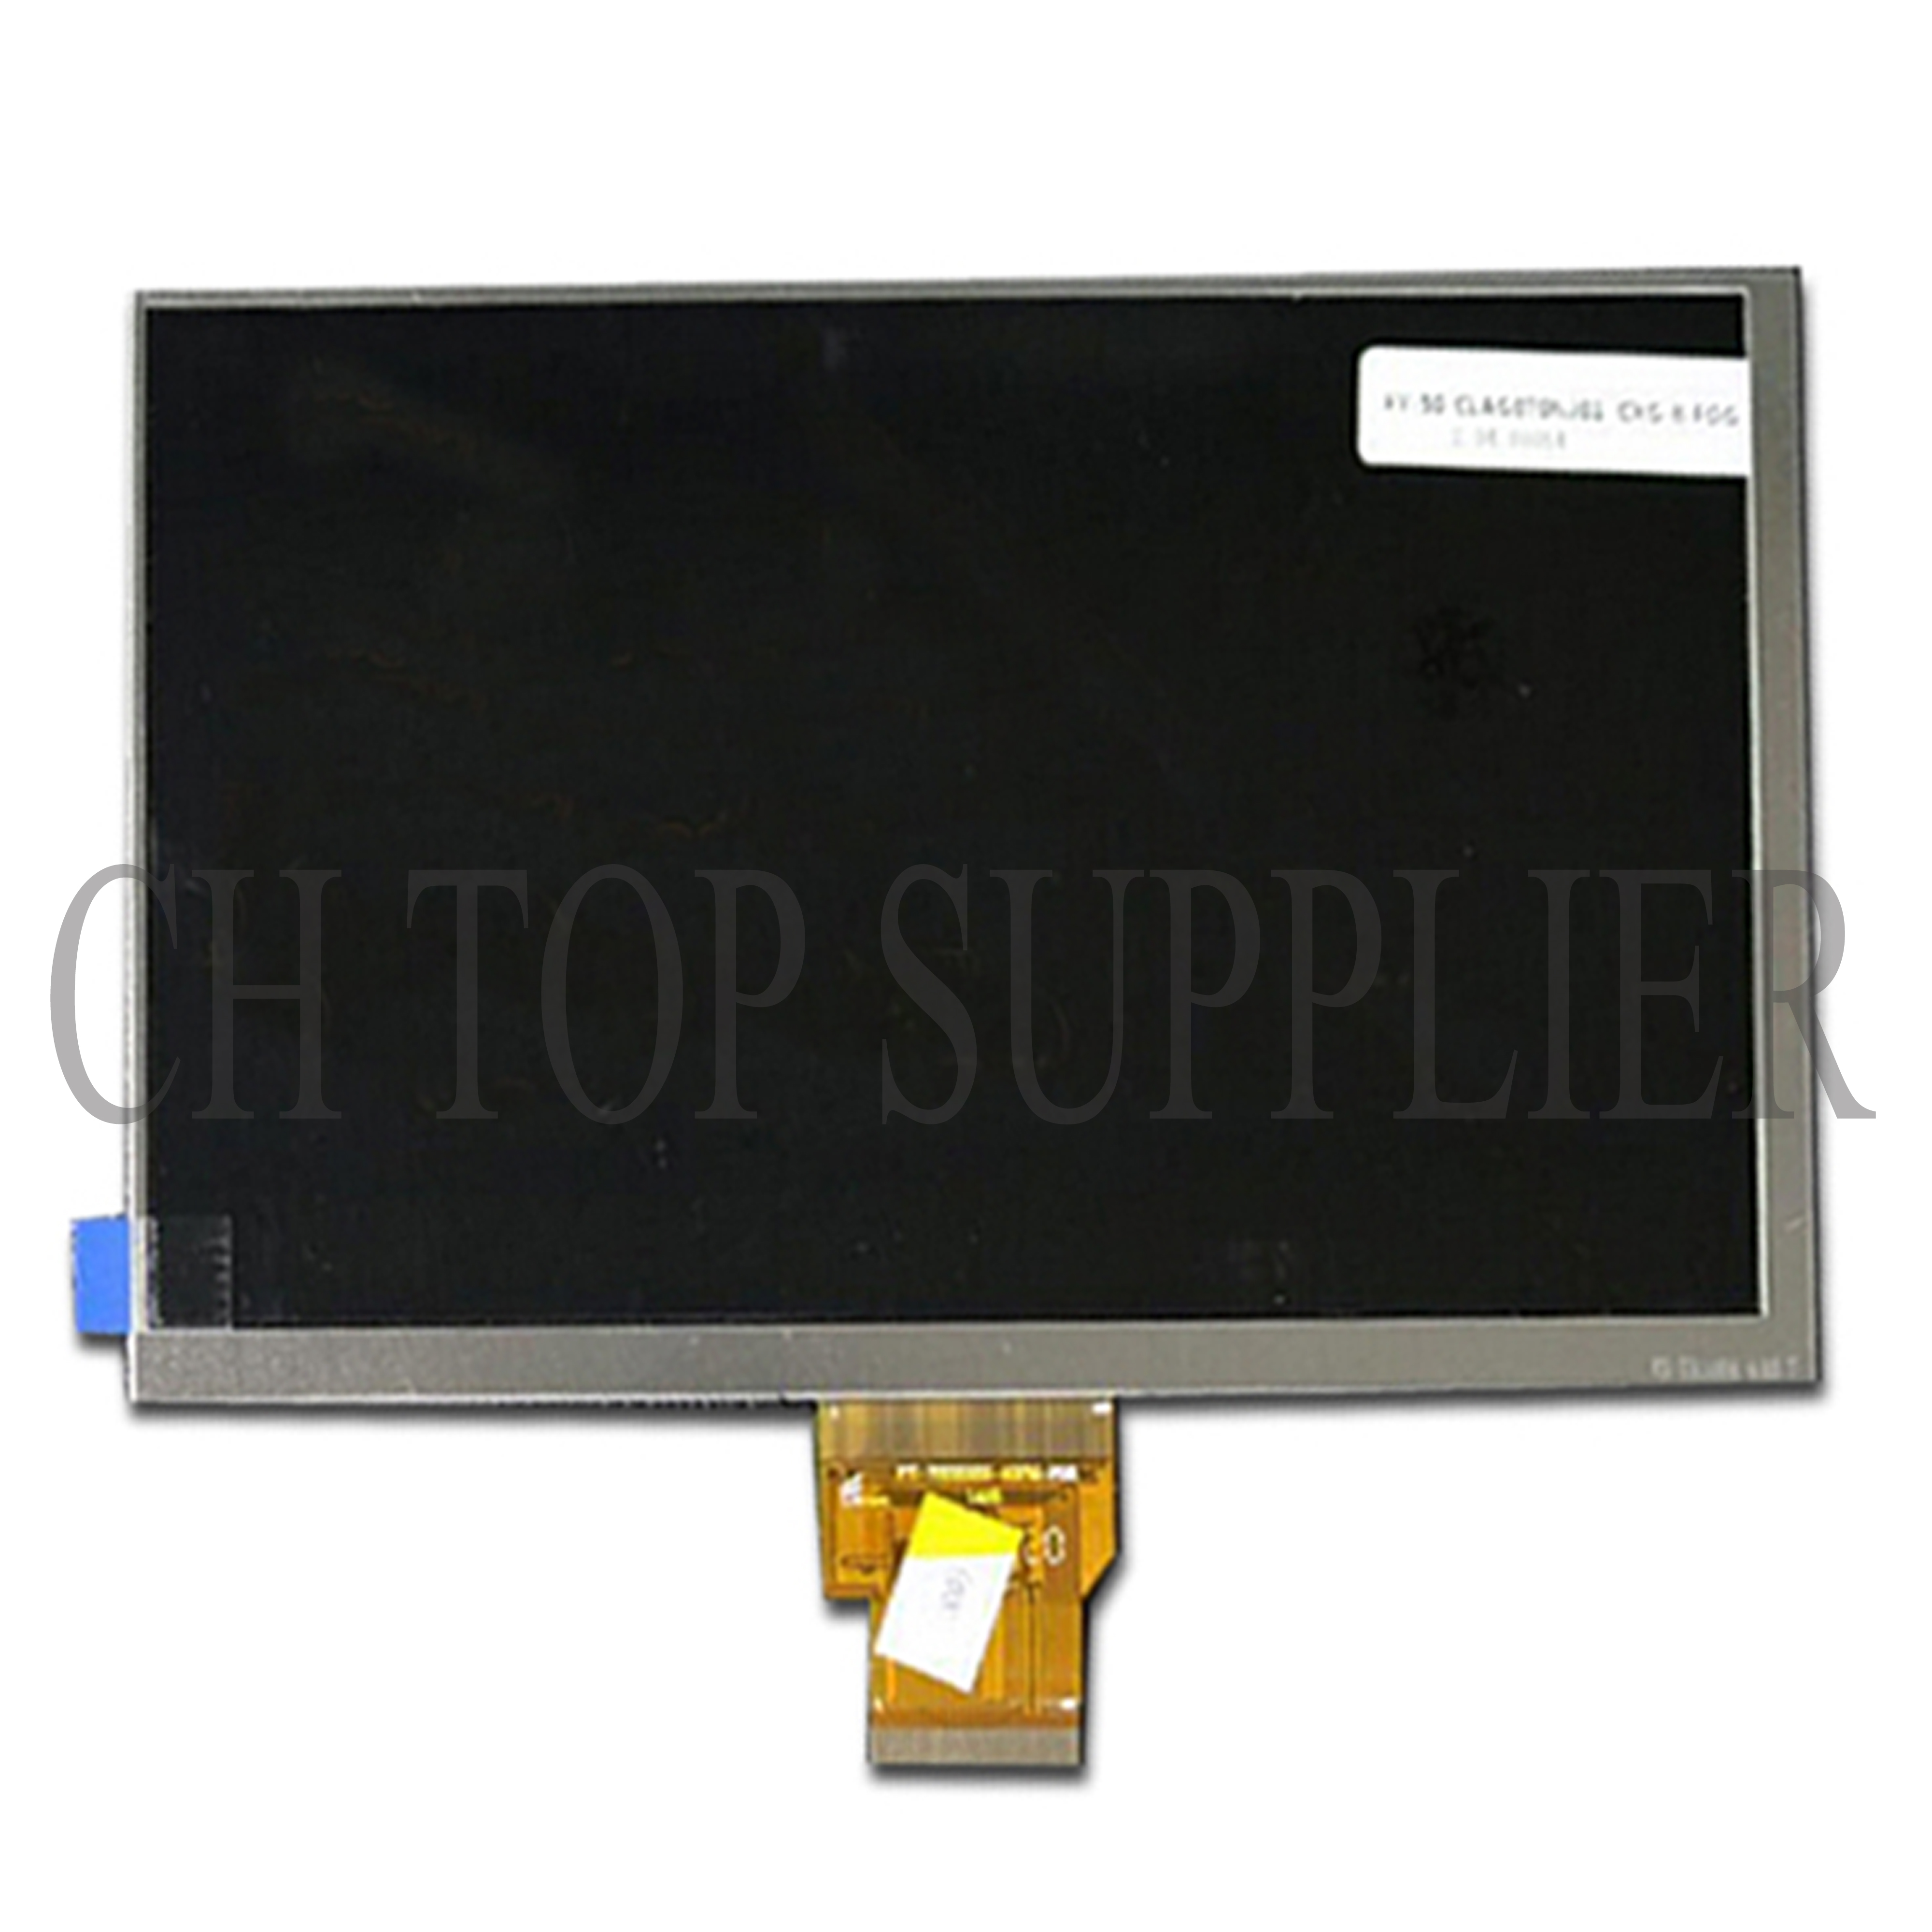 New LCD Display 7 inch for Digma hit 3G ht7070mg Tablet TFT 40pin Screen Matrix Digital Replacement Panel Free Shipping new 7 inch replacement lcd display screen for oysters t72ms 3g 1024 600 tablet pc free shipping